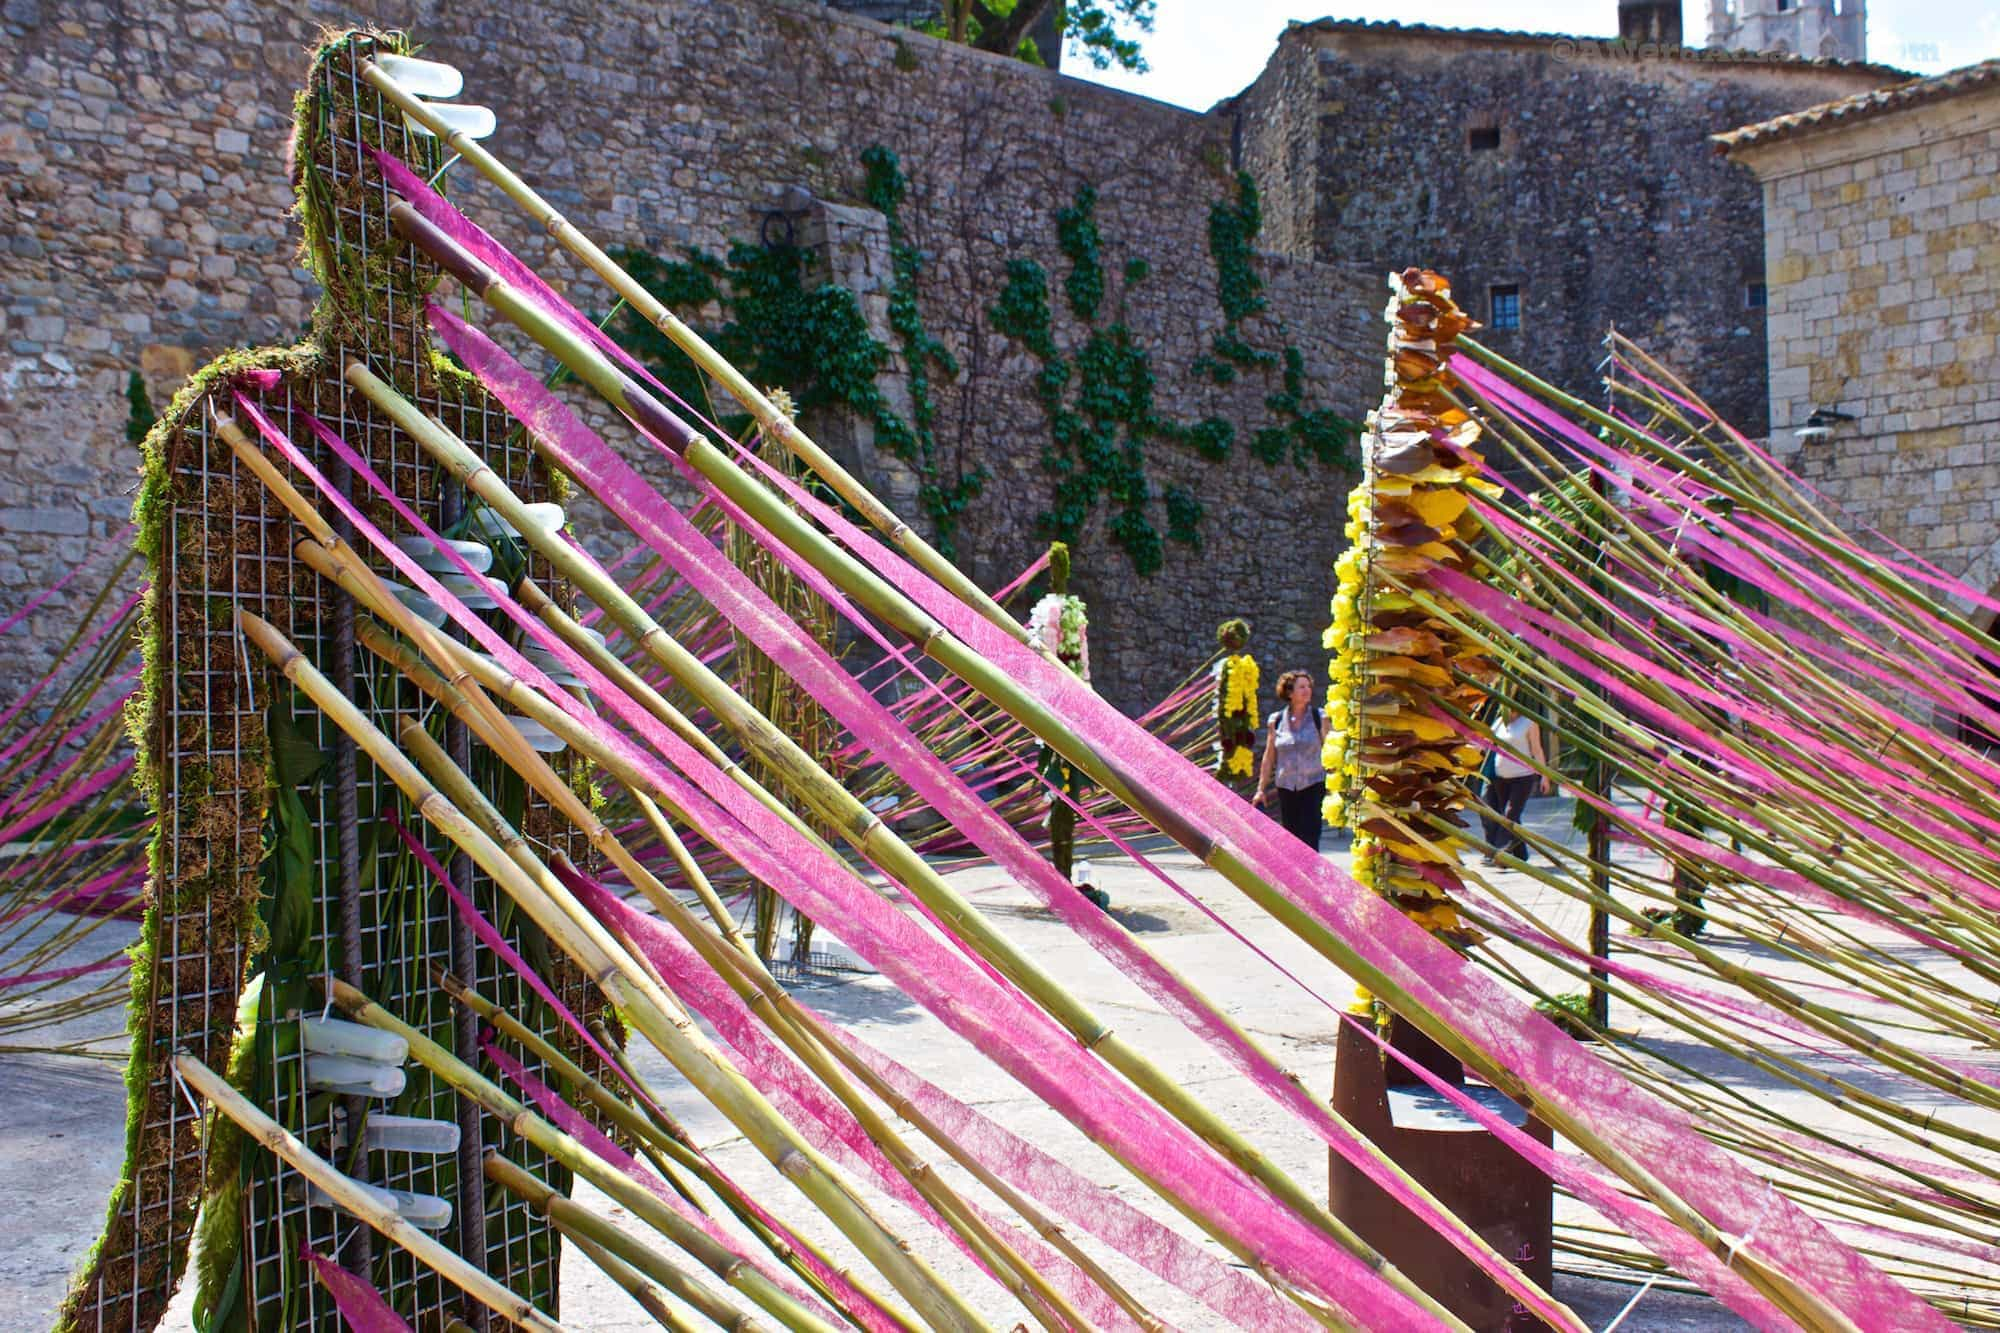 Temps de Flors Girona flowers sculpture